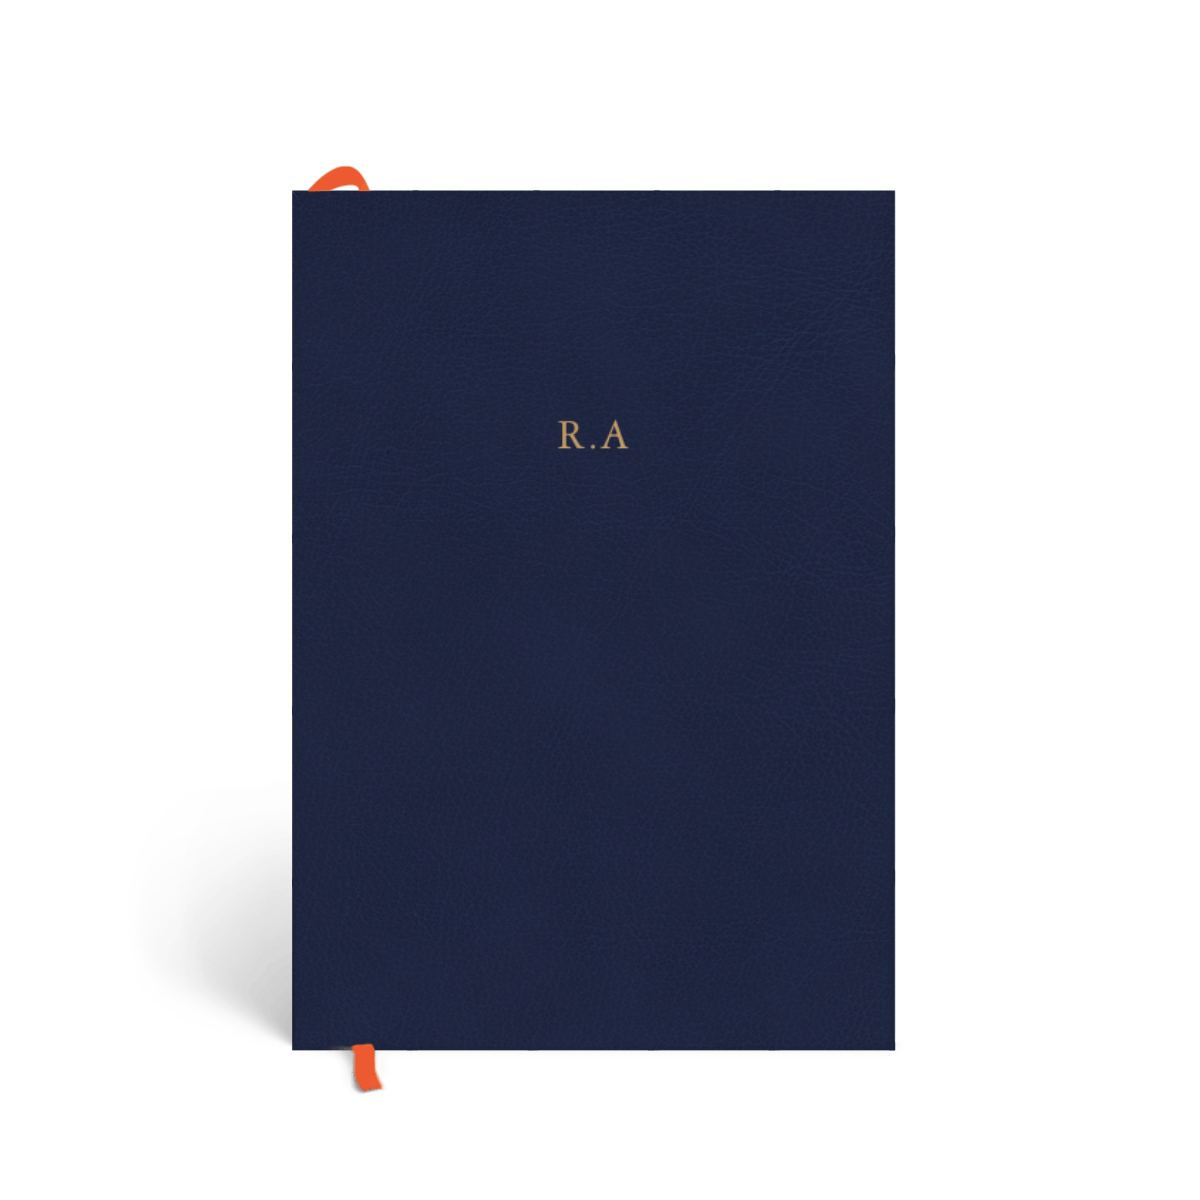 Https%3a%2f%2fwww.papier.com%2fproduct image%2f95370%2f113%2froyal blue monogram 23878 front 1573817475.png?ixlib=rb 1.1